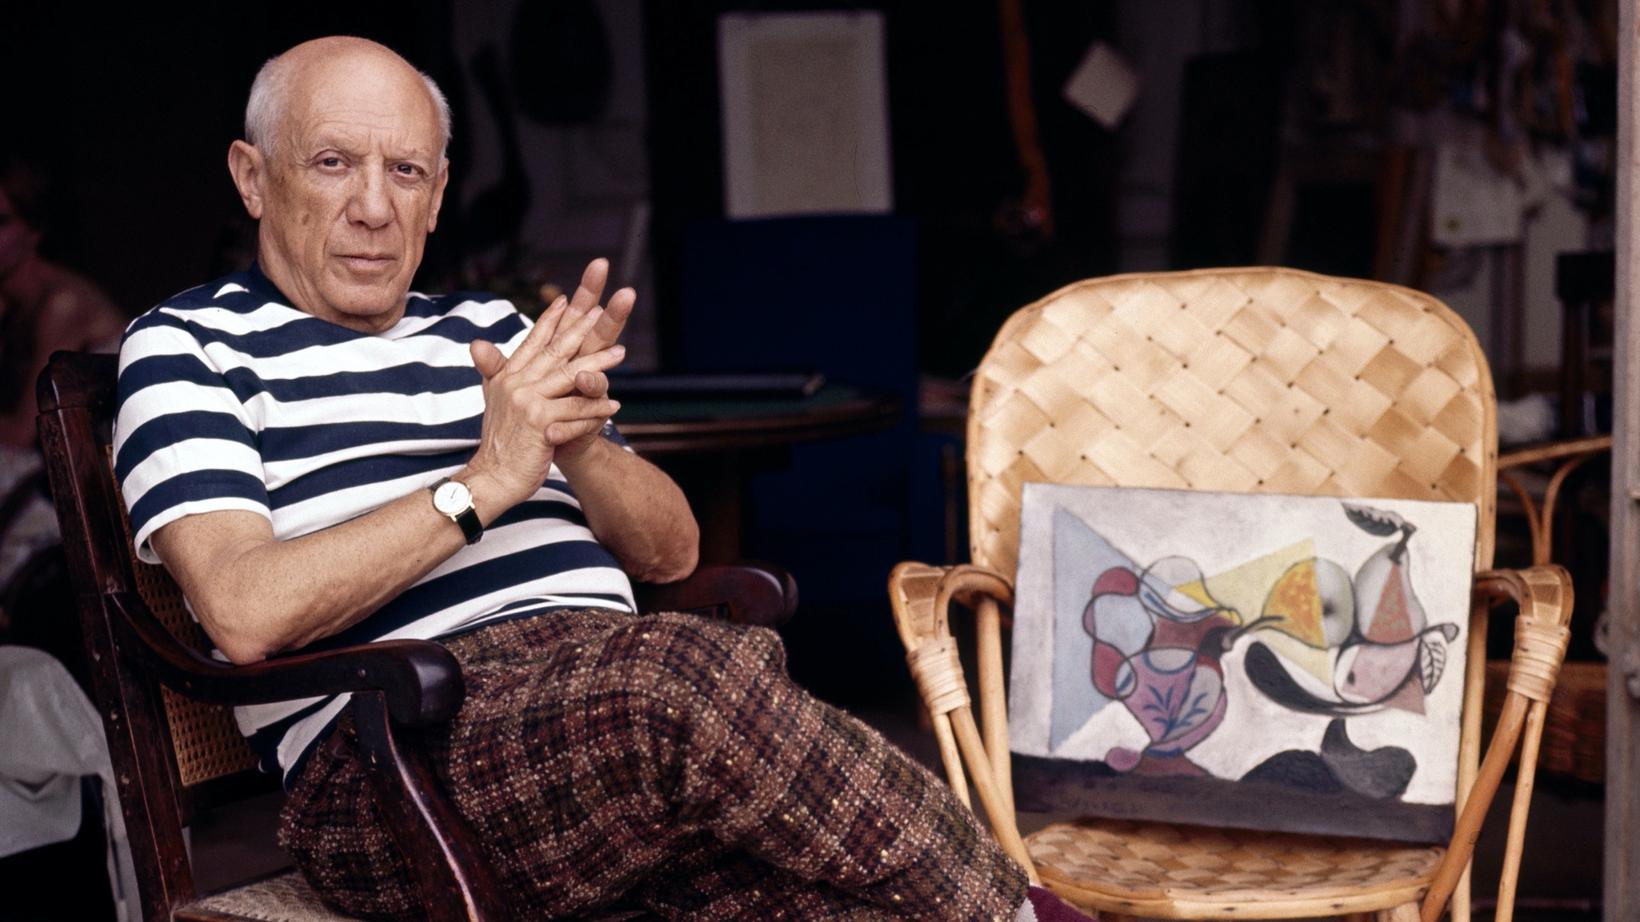 Picasso, 1960 © Popperfoto/Getty Images